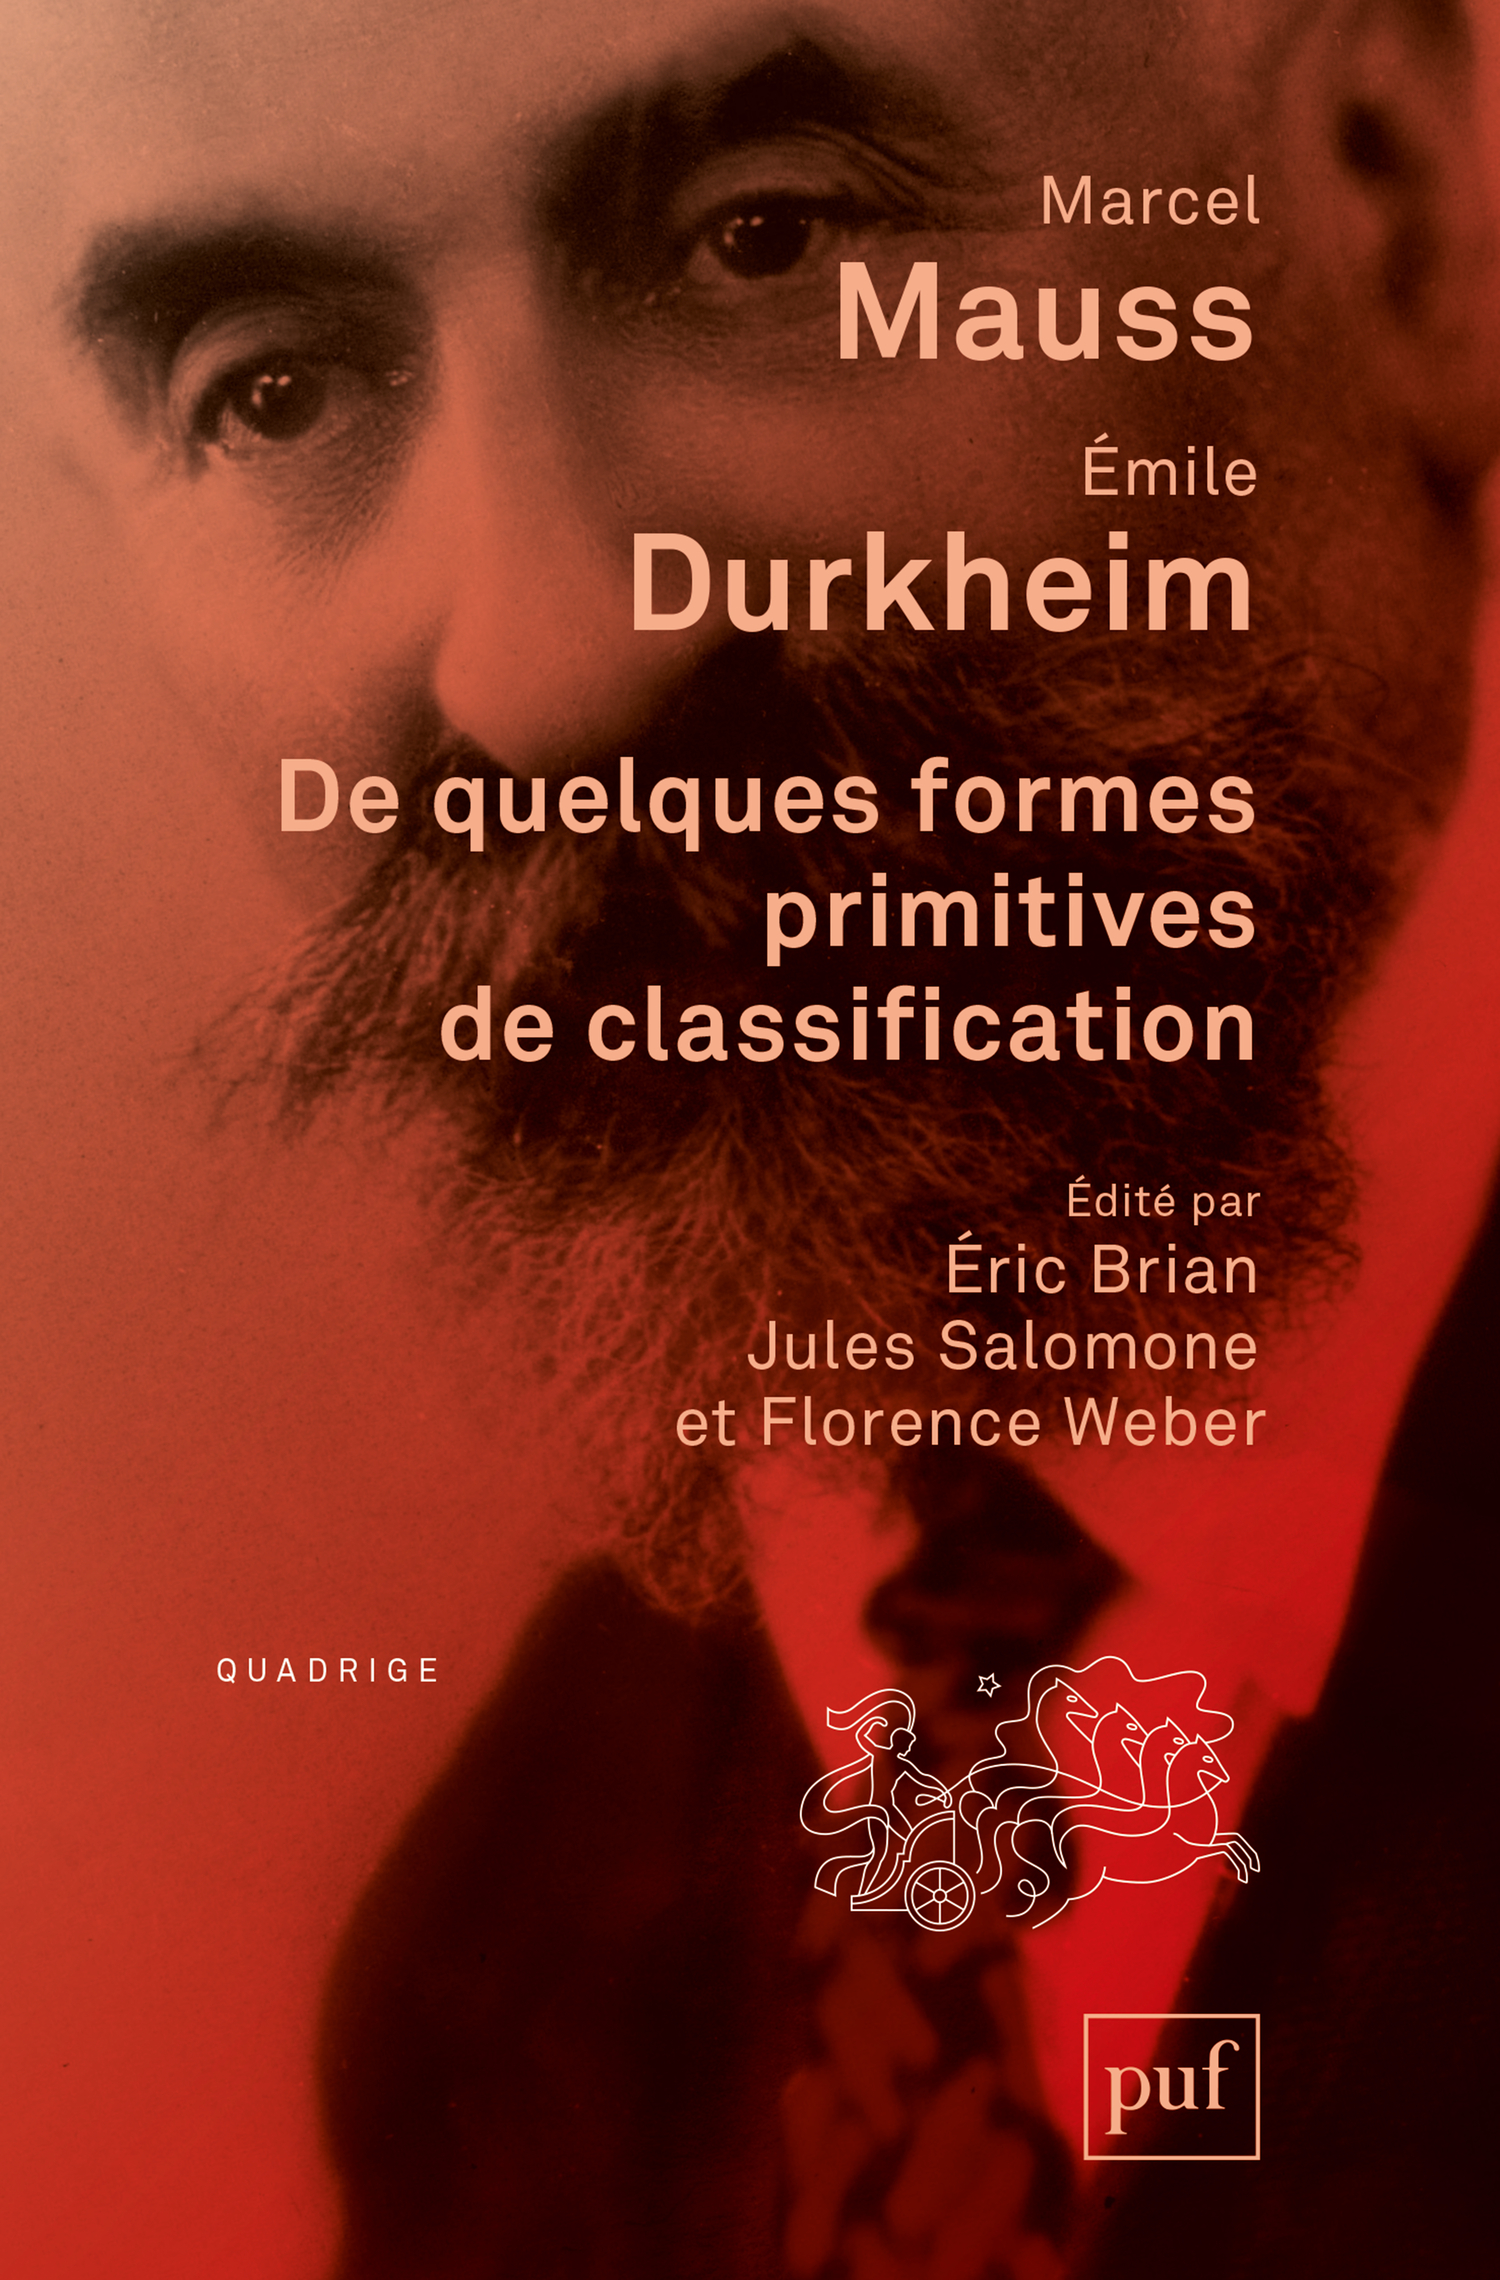 De quelques formes primitives de classification De Marcel Mauss et Émile Durkheim - Presses Universitaires de France